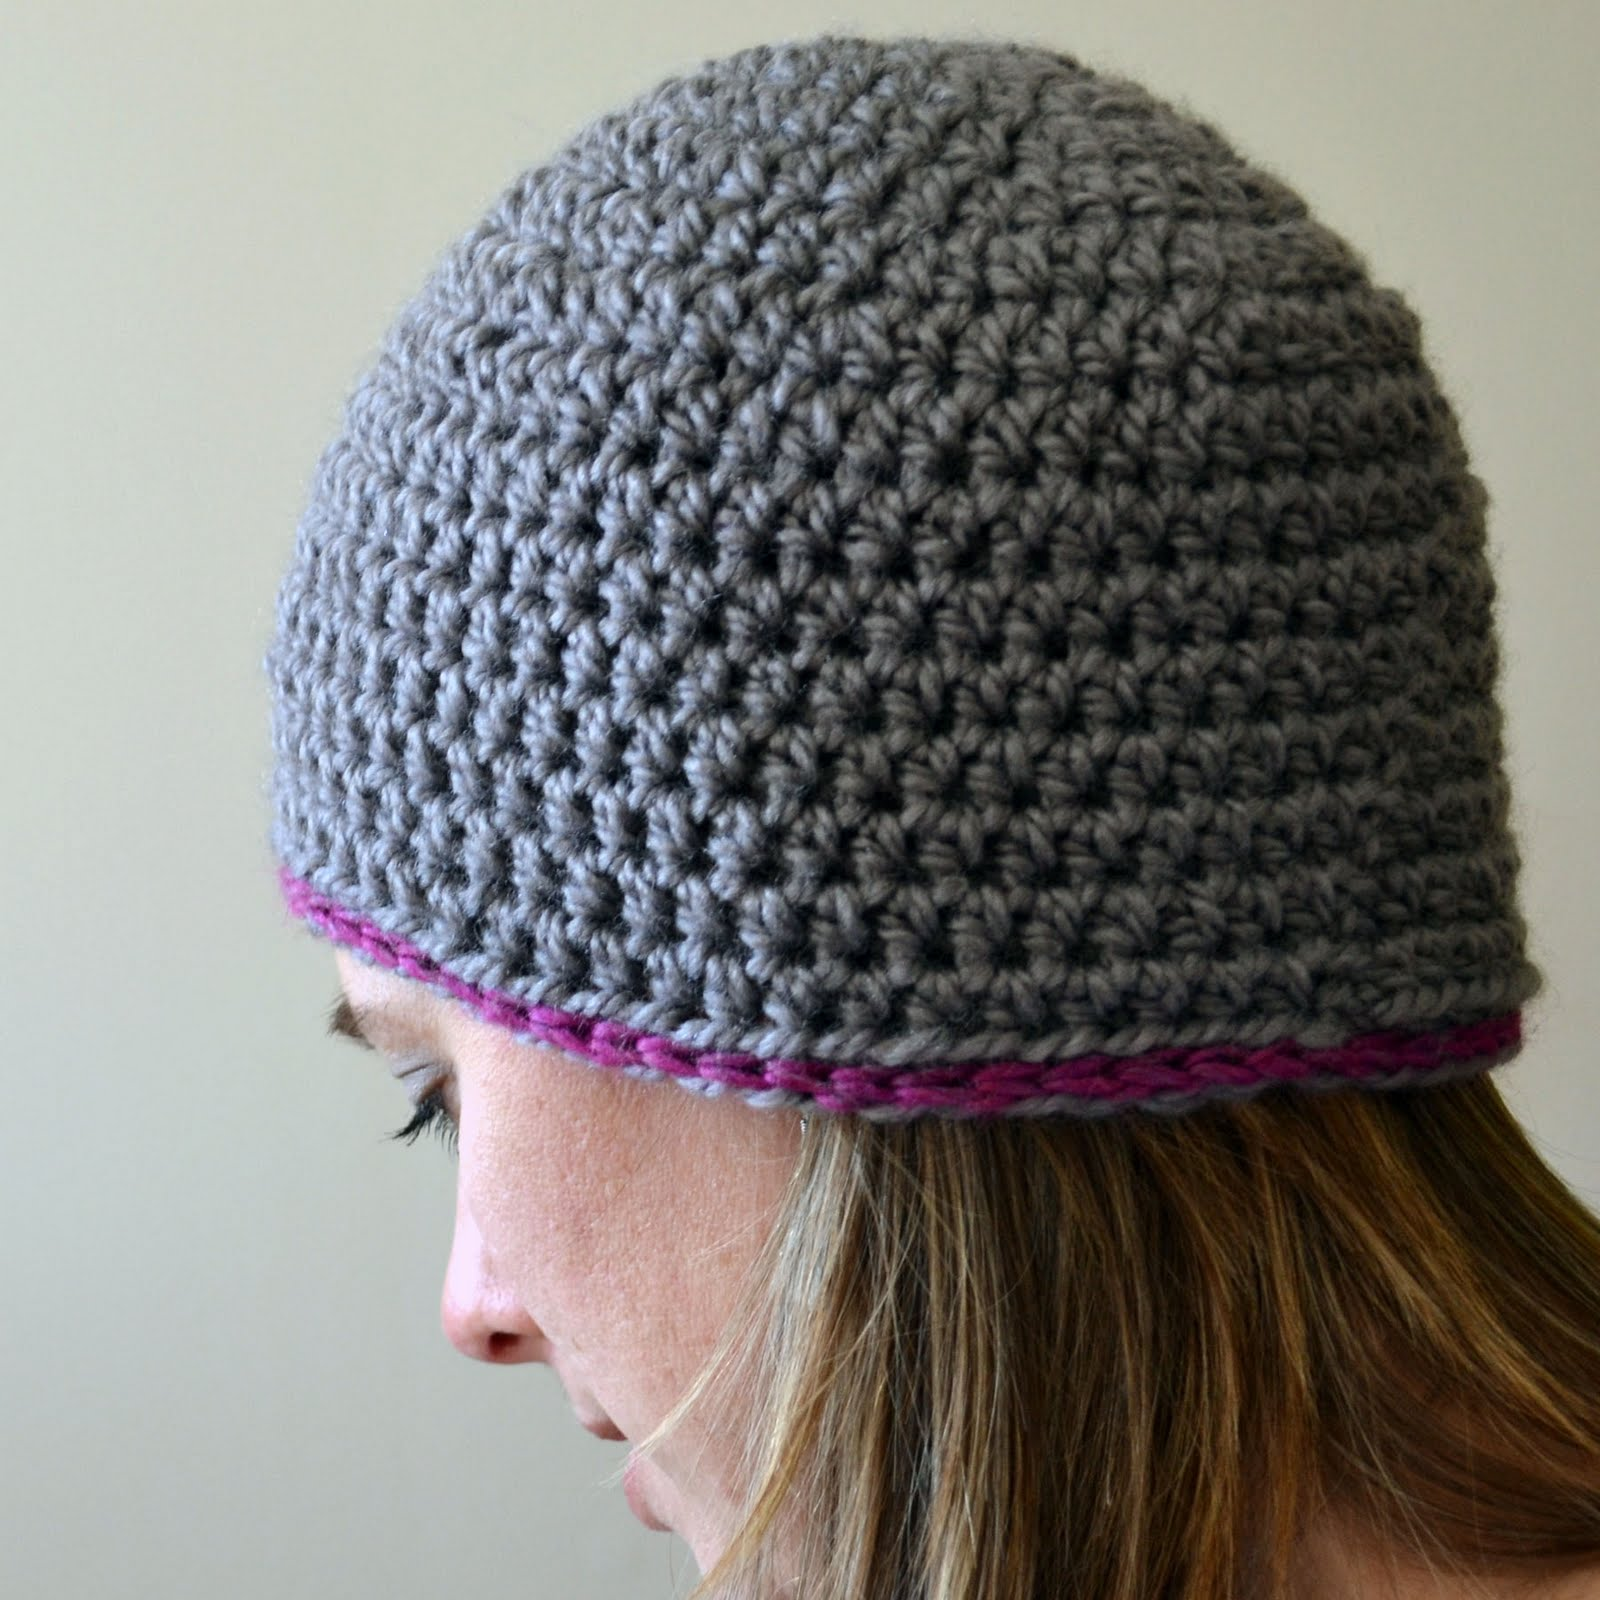 Crochet Basic Beanie Hat Pattern : HDC CROCHET BEANIE PATTERN ? Easy Crochet Patterns